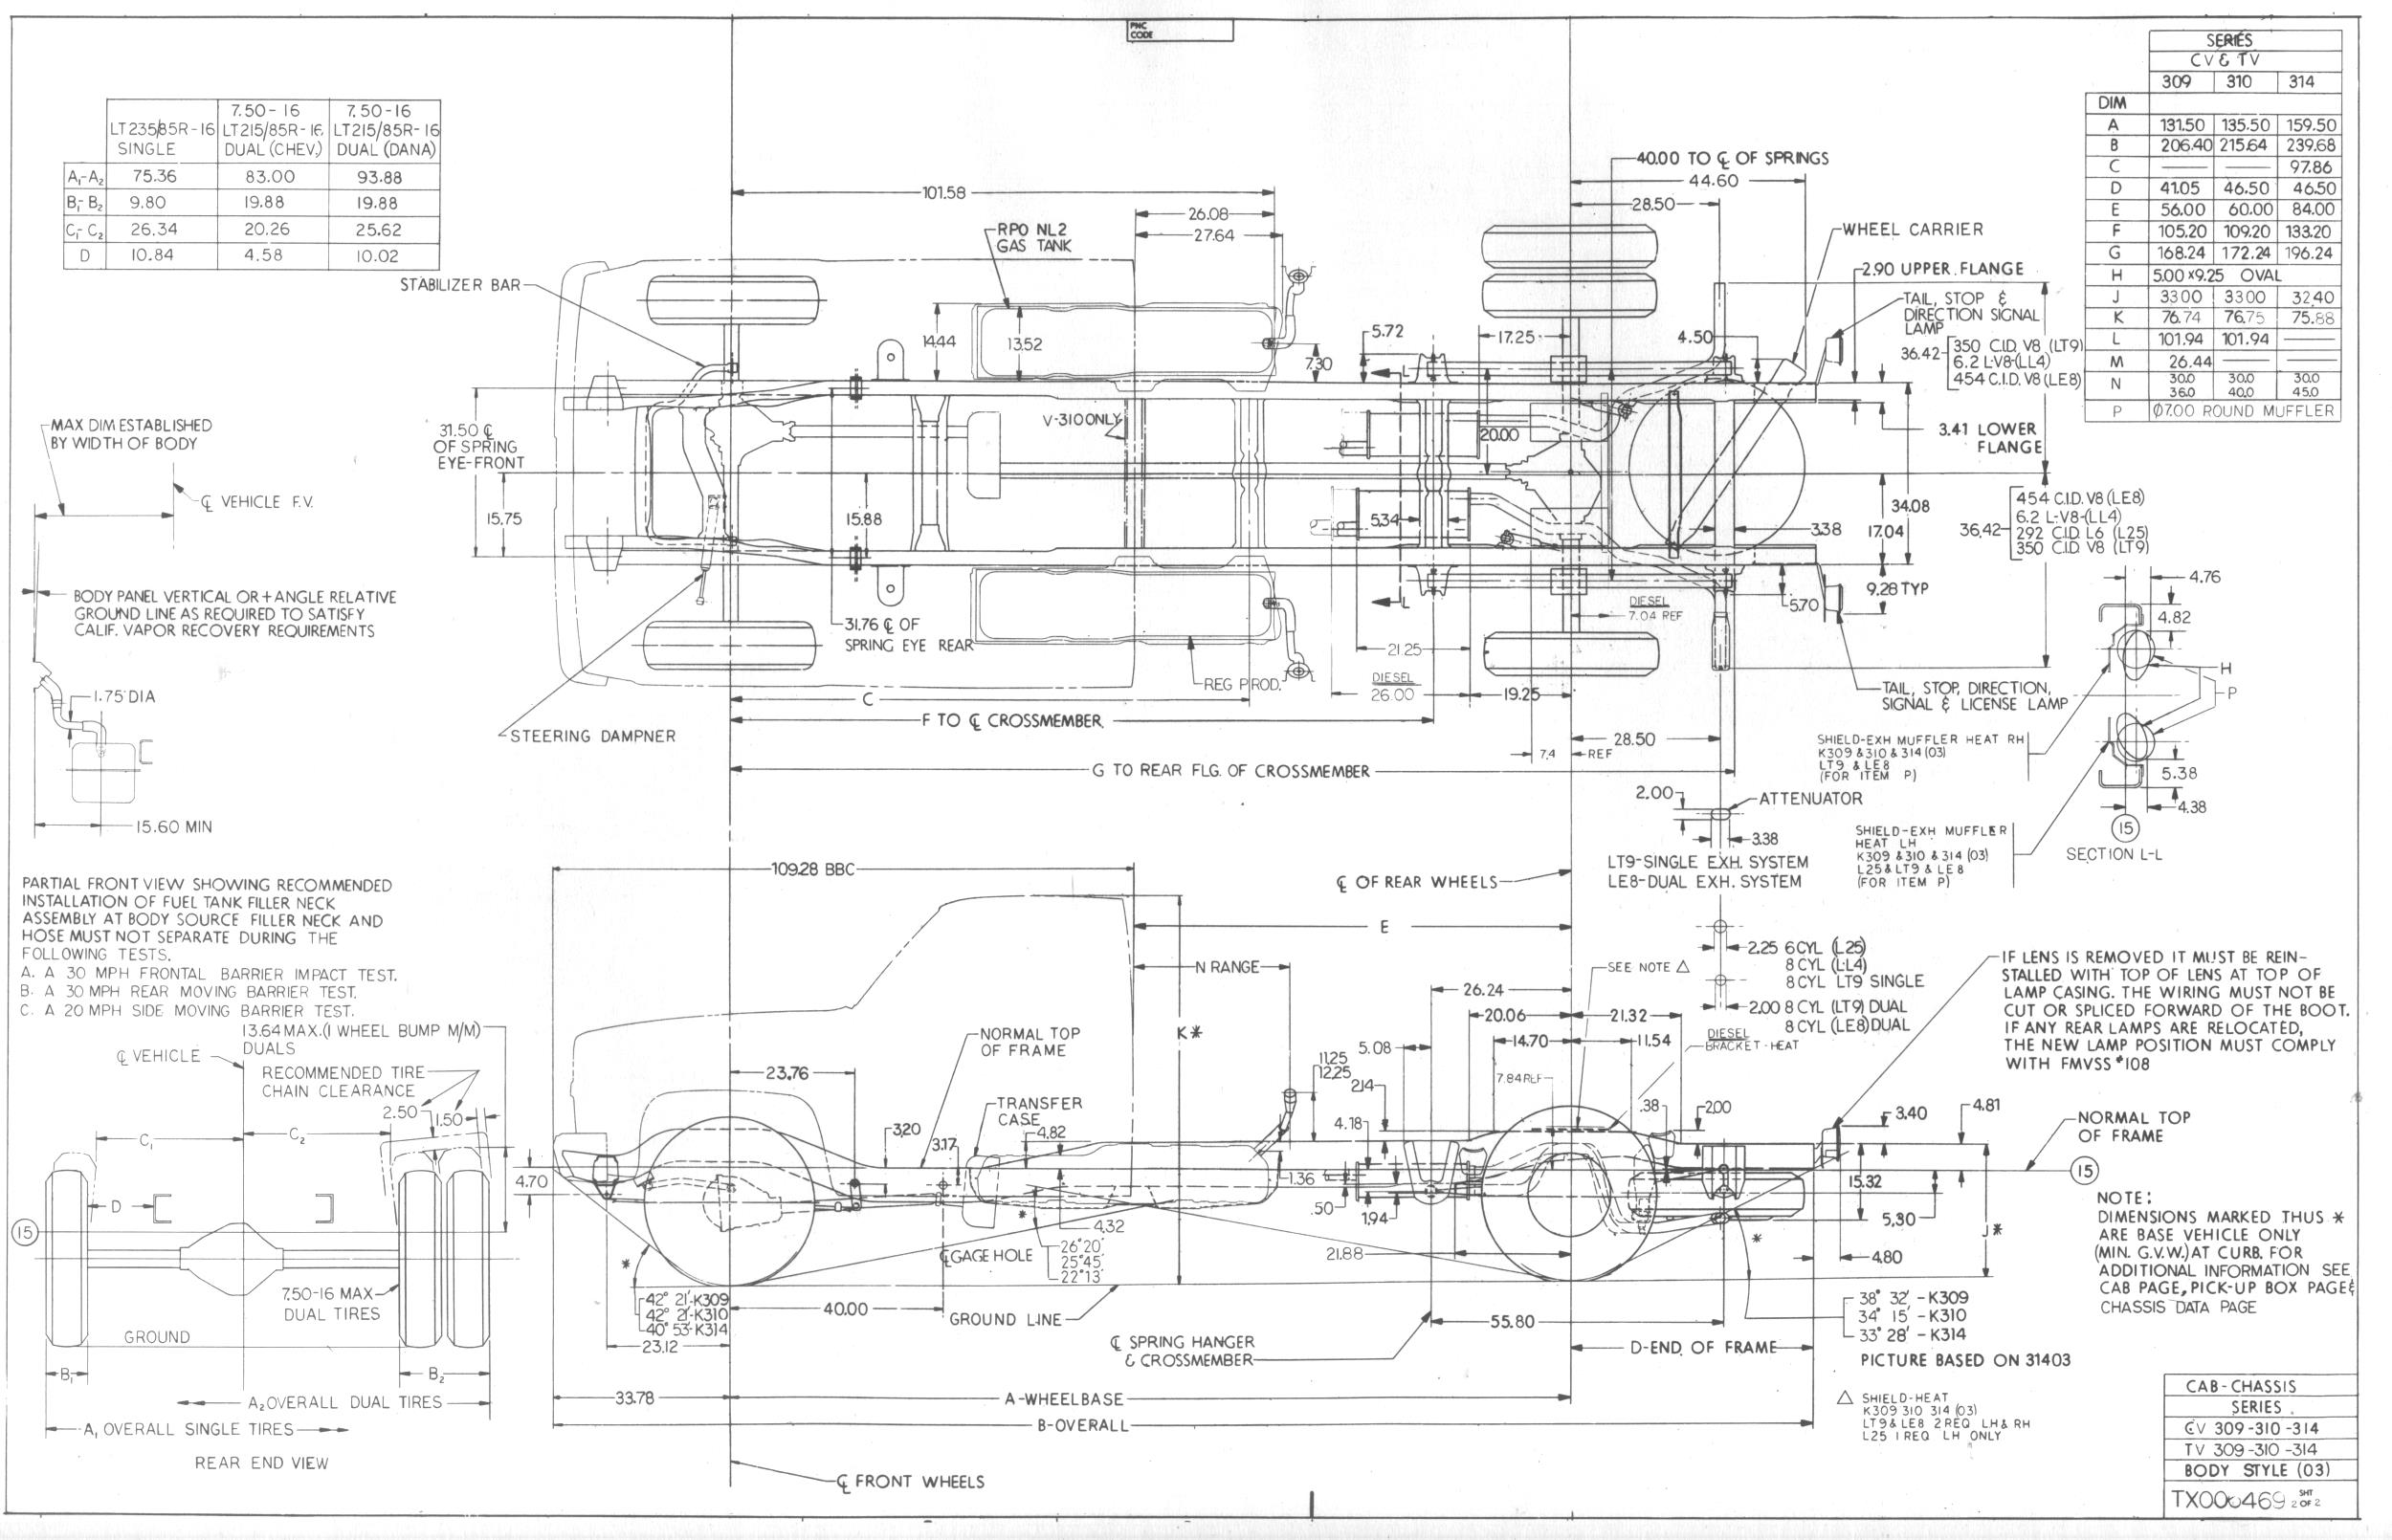 s10 frame diagram gt 2158  blazer wiring diagram as well chevy s10 frame dimensions  blazer wiring diagram as well chevy s10